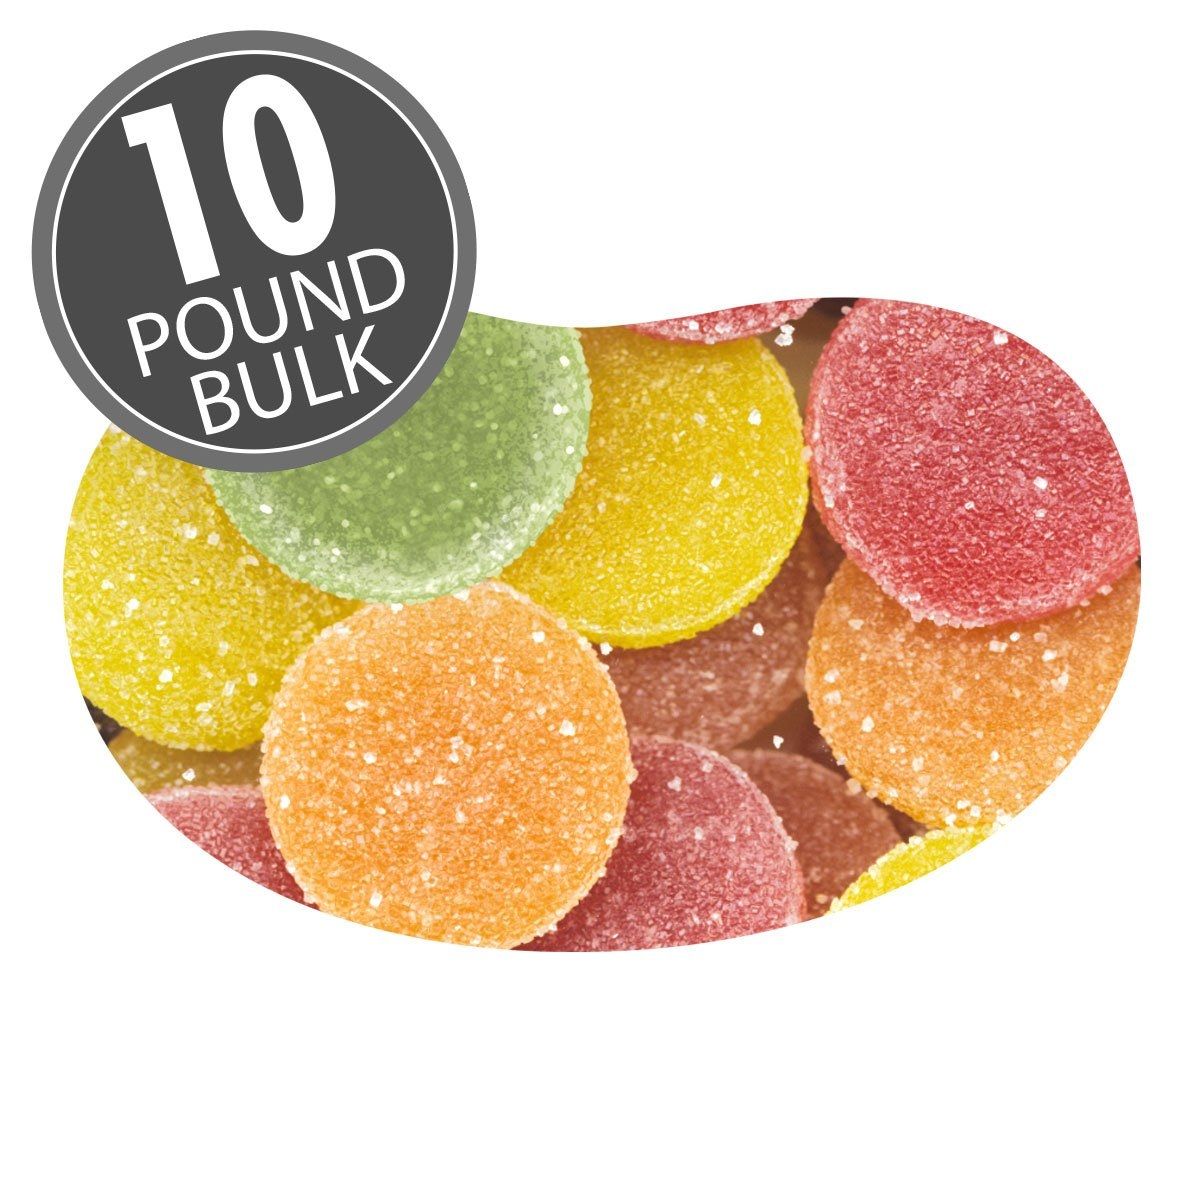 Sunkist Fruit Gems Candy - 10 lb Case (Unwrapped)